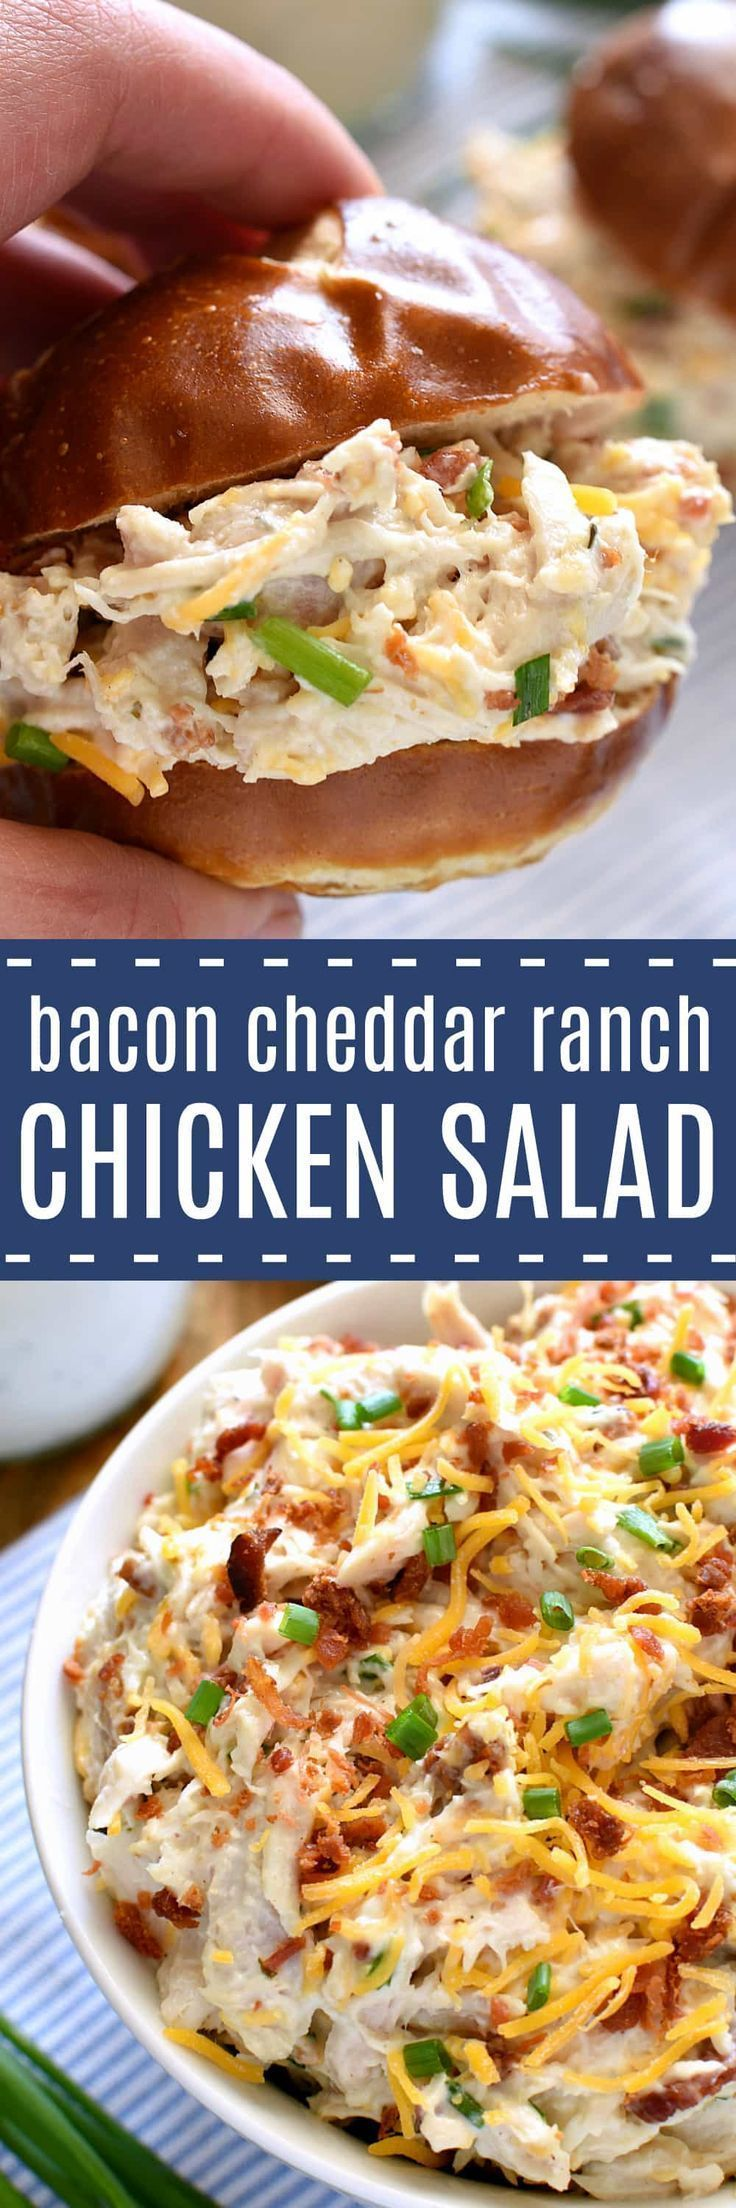 This Bacon Cheddar Ranch Chicken Salad is packed with all the BEST flavors! Chicken, bacon, cheddar, cheese, and ranch dressing come together in the most delicious way in this chicken salad that's guaranteed to become a favorite!